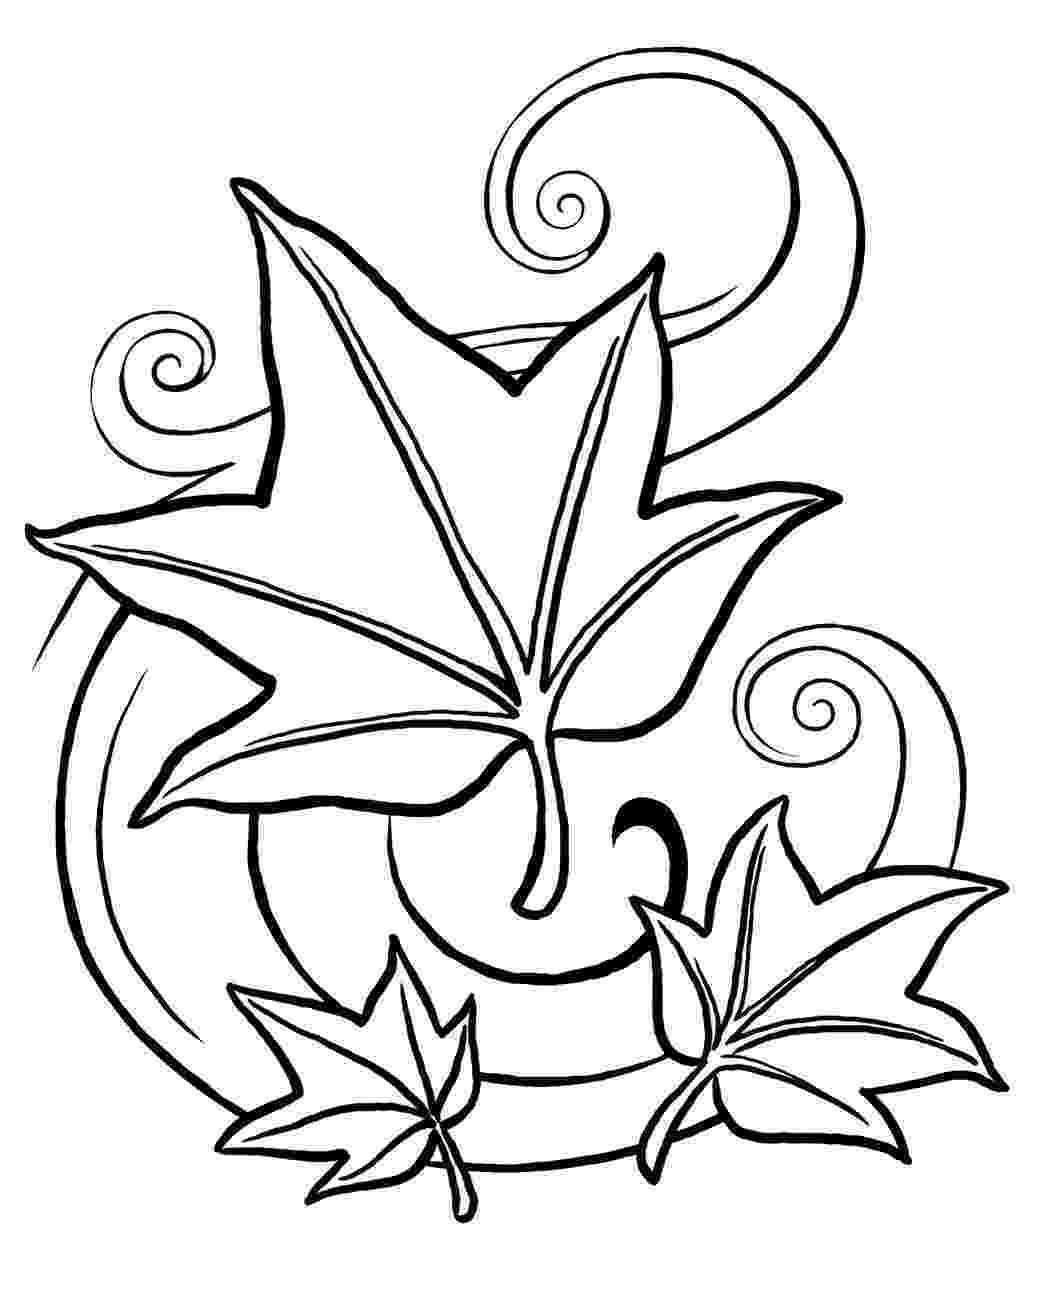 leaves coloring page five little leaves early childhood arts connection page coloring leaves